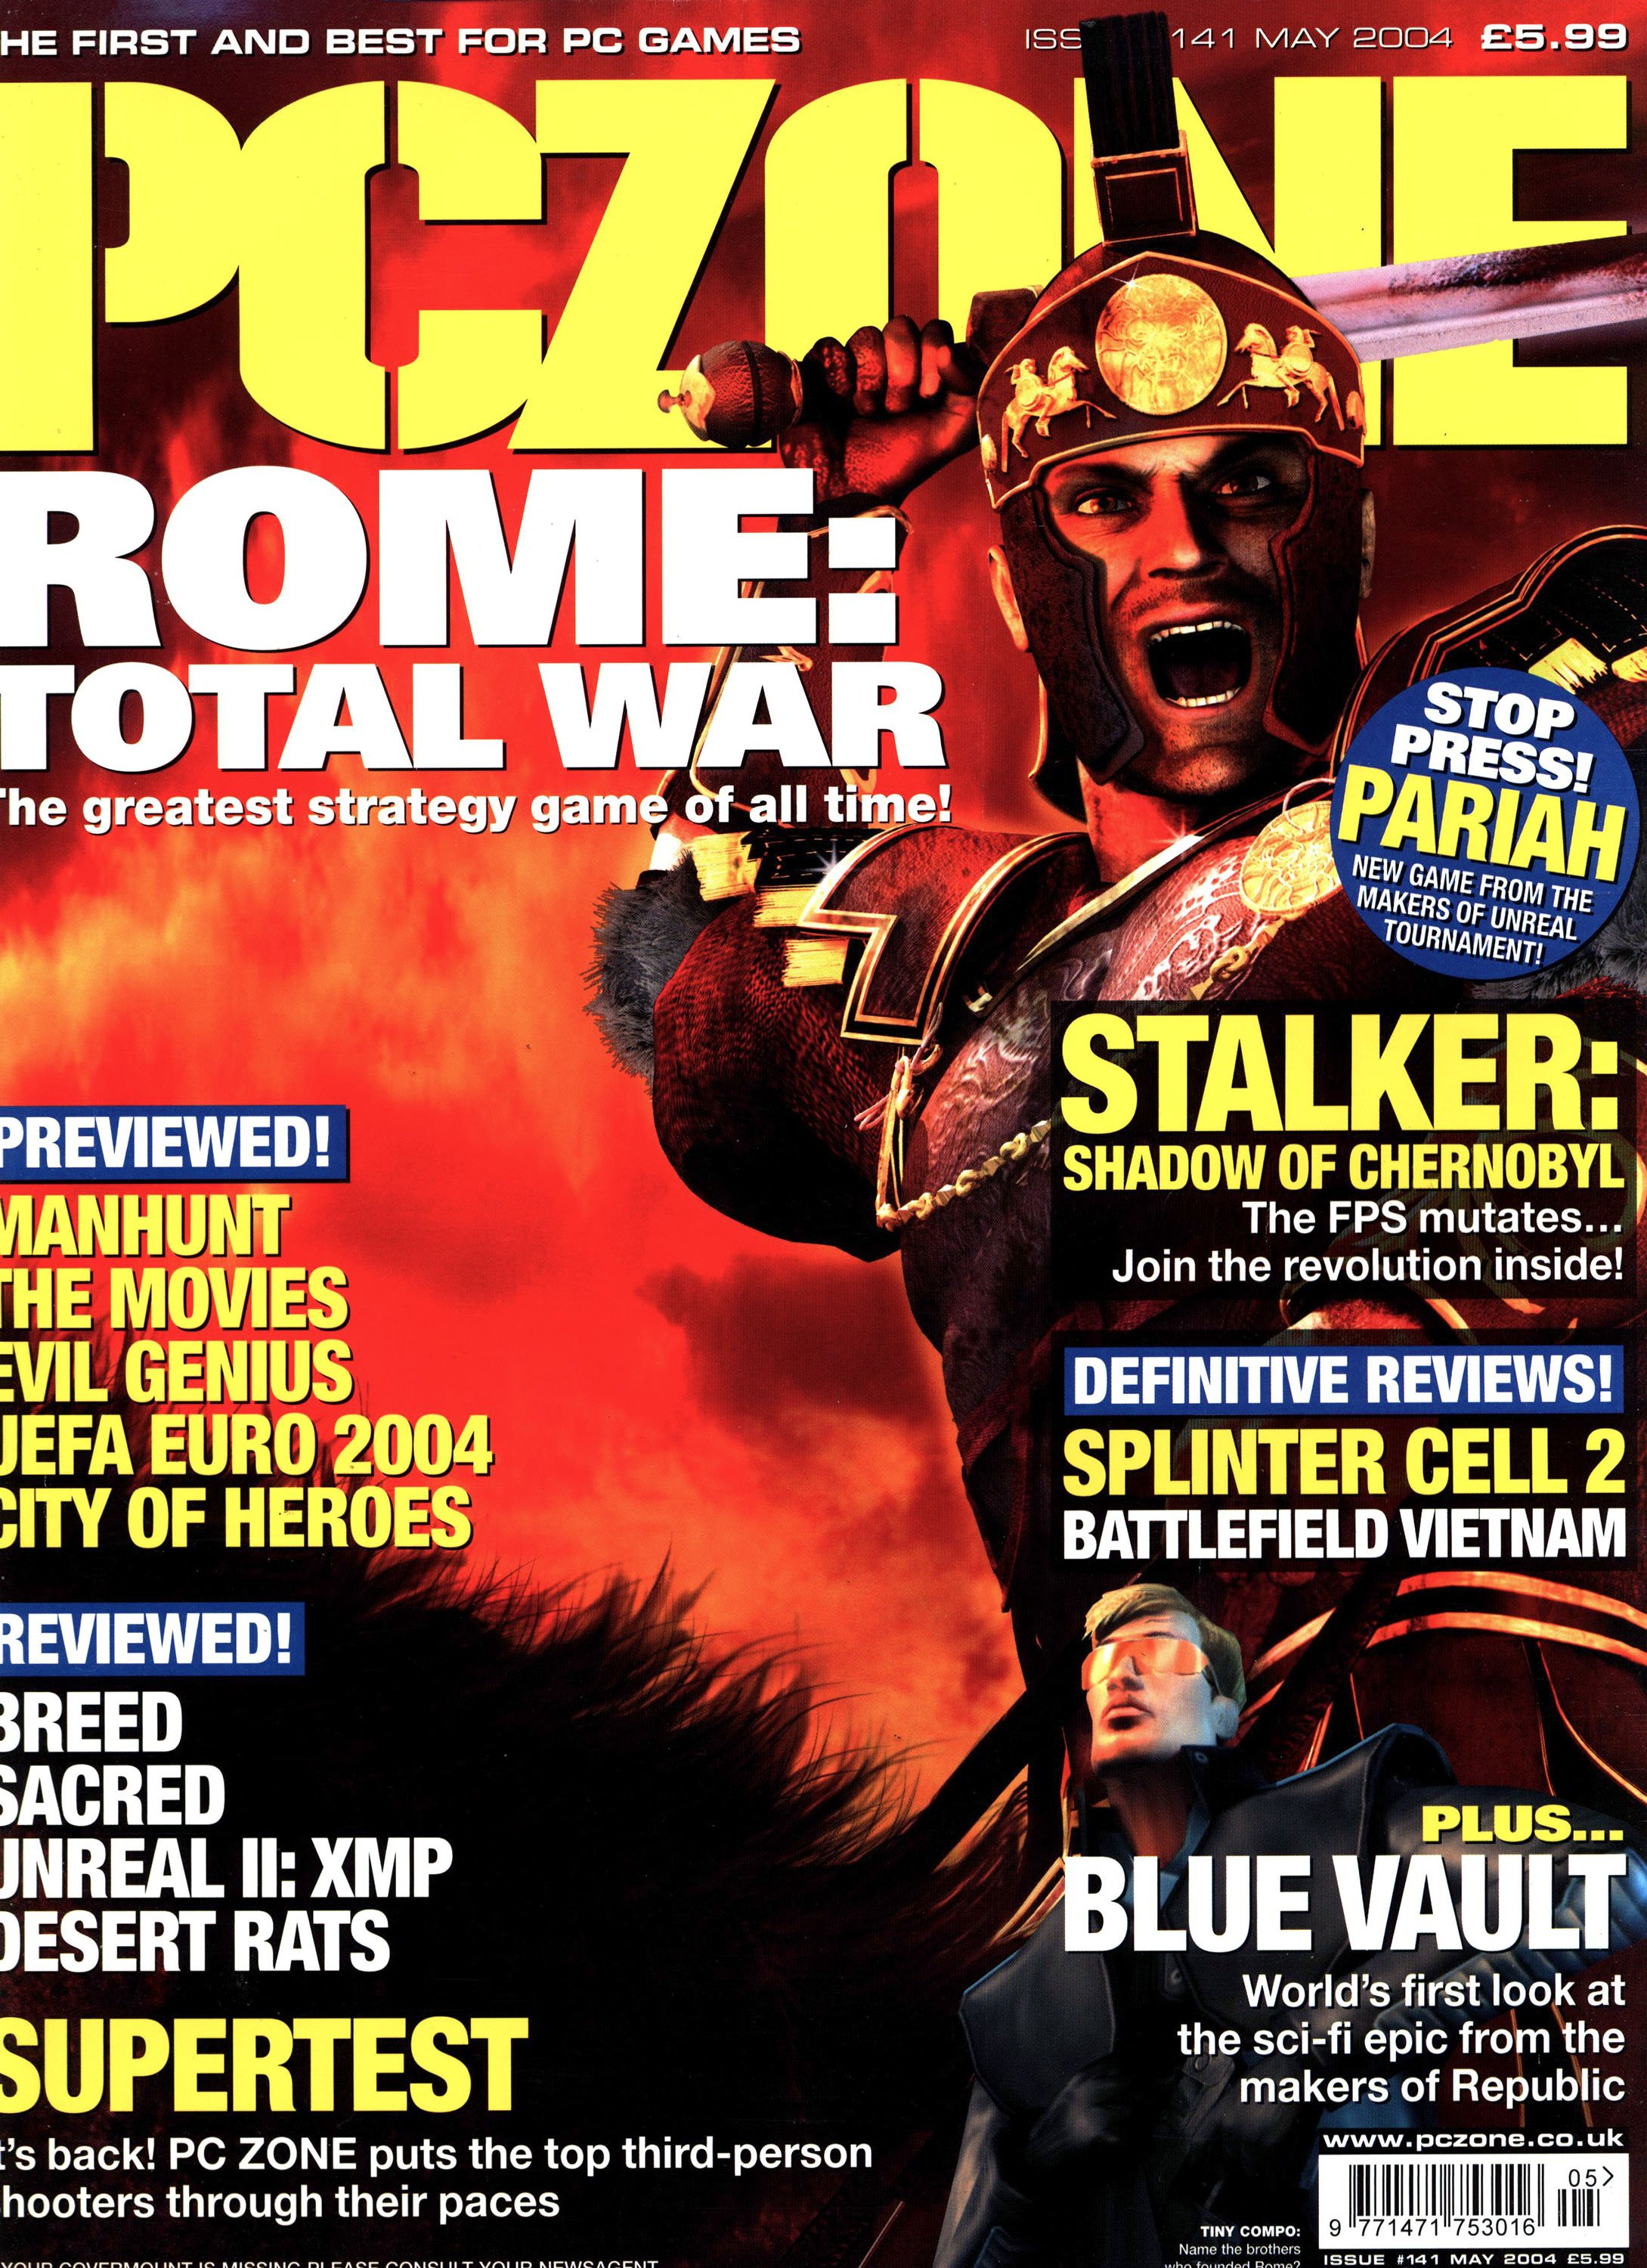 PC Zone Issue 141 (May 2004)